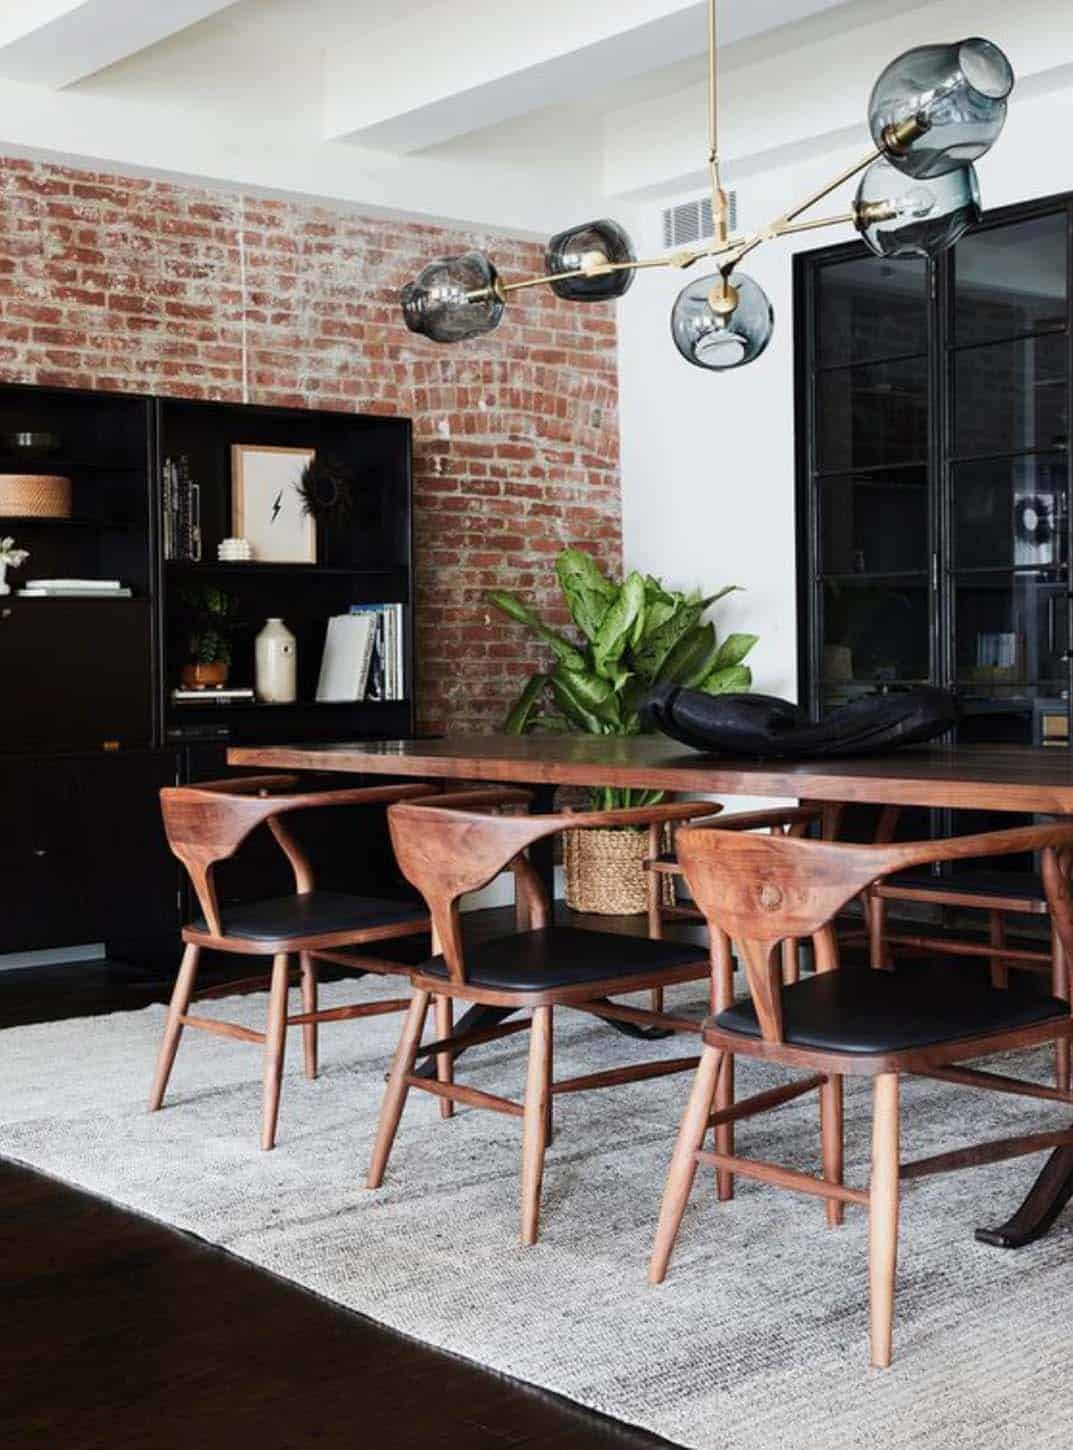 Incroyable So Today Weu0027ve Been Looking At Some Dining Room Inspiration To Try And Help  Me With My Dilemmau2026 Hereu0027s What Weu0027ve Looked At: